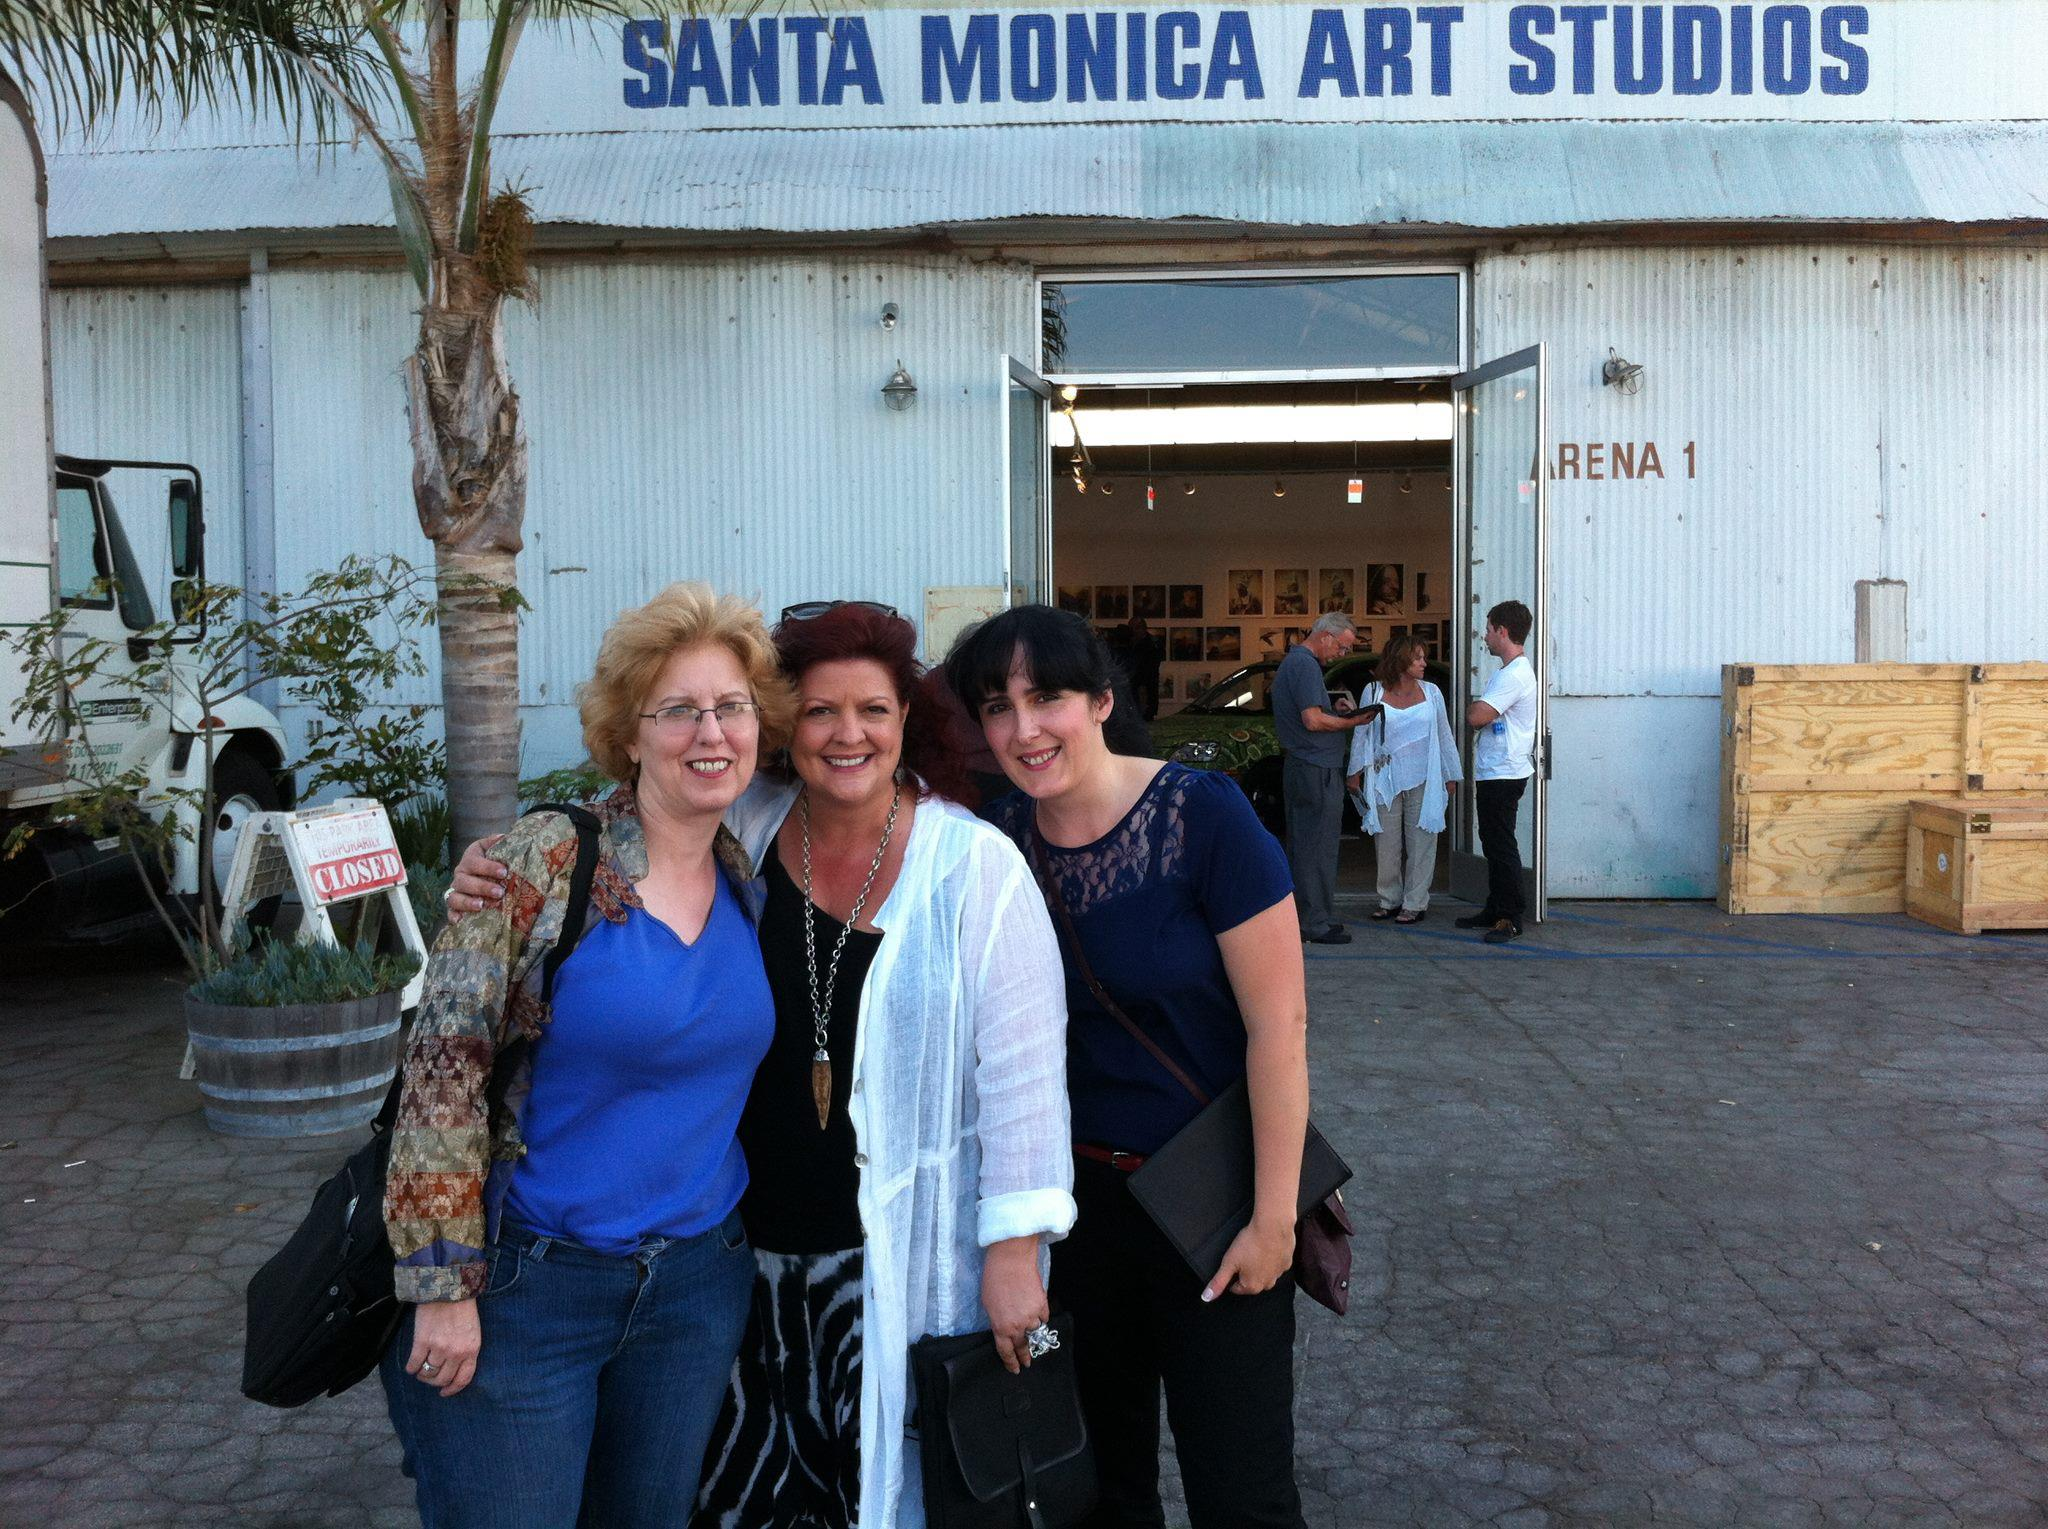 Me with two fellow iPhone artists (Marie Matthews and Sonya Sanchez Arias) on the opening night.